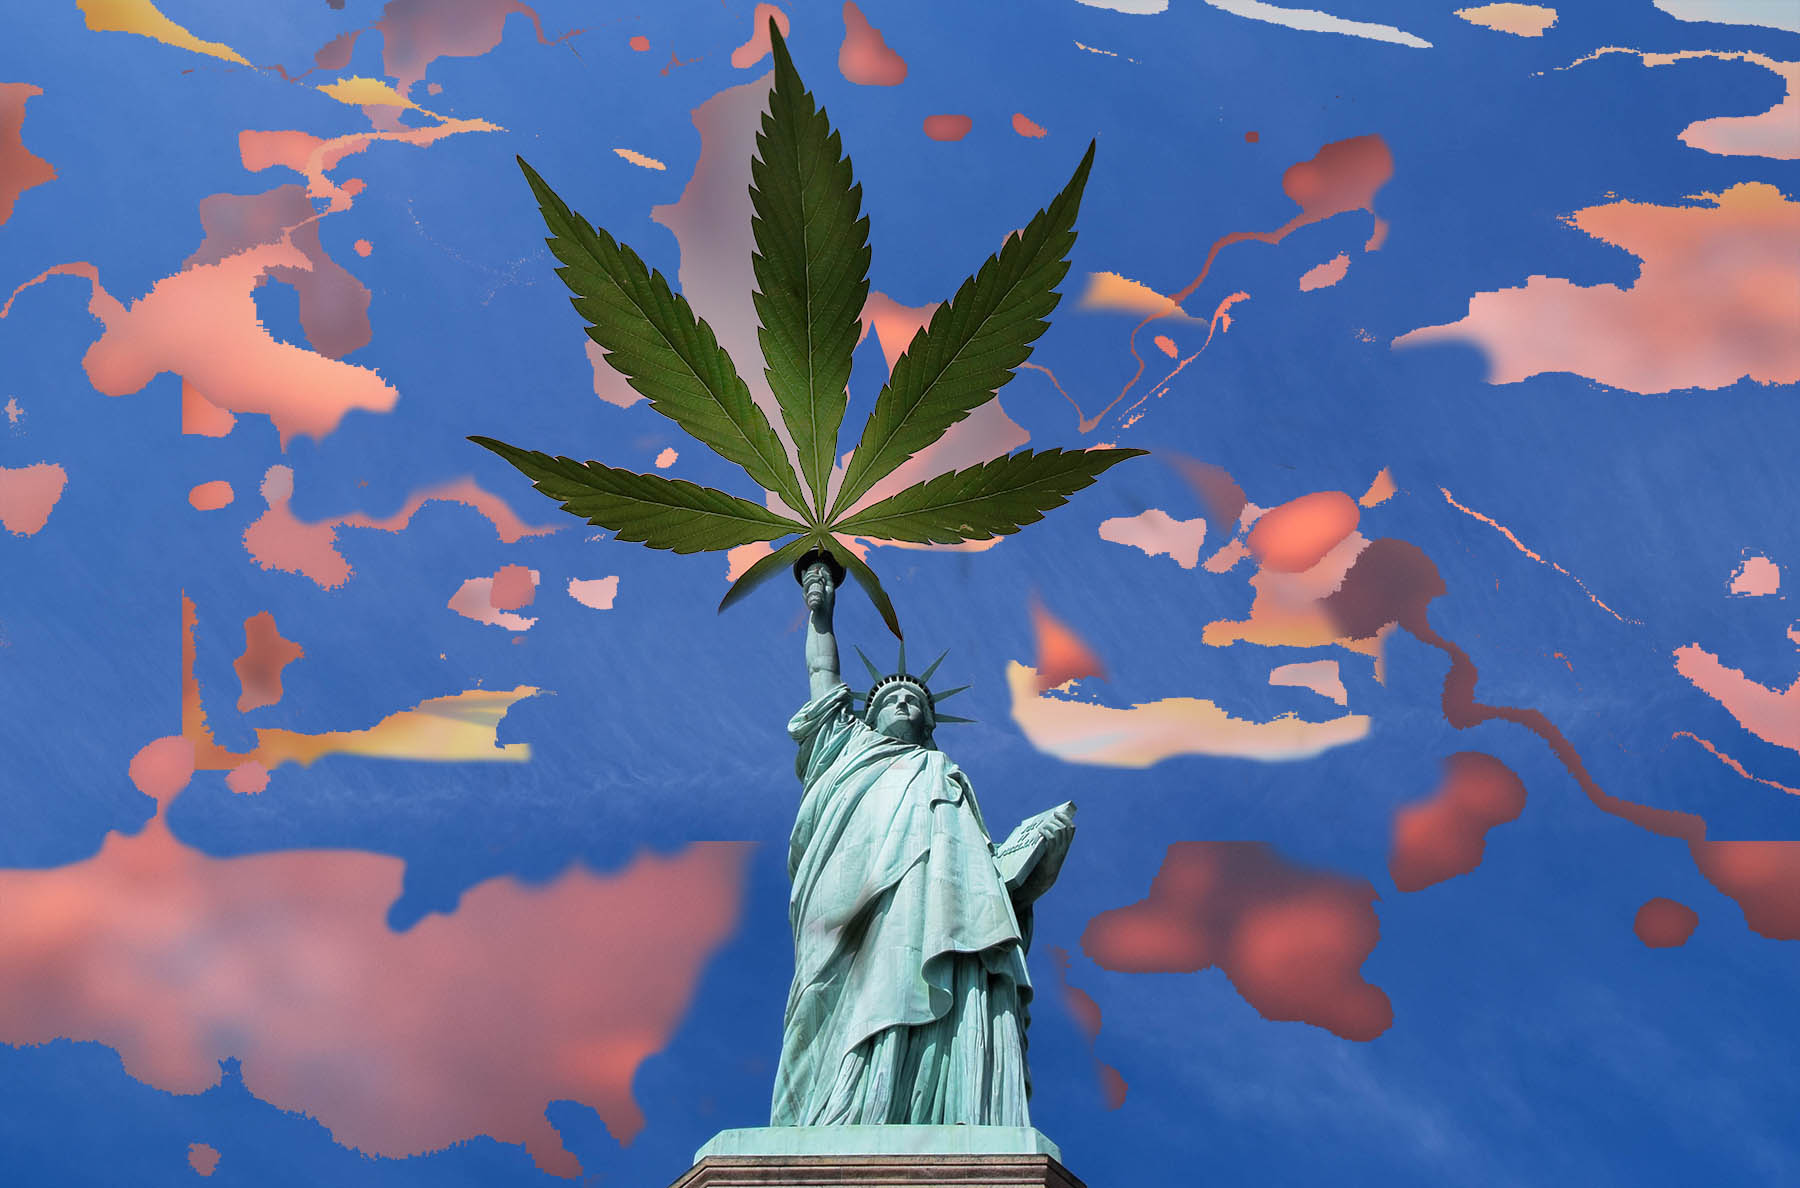 New York Cannabis Legalization Deal Imminent | The Village Voice